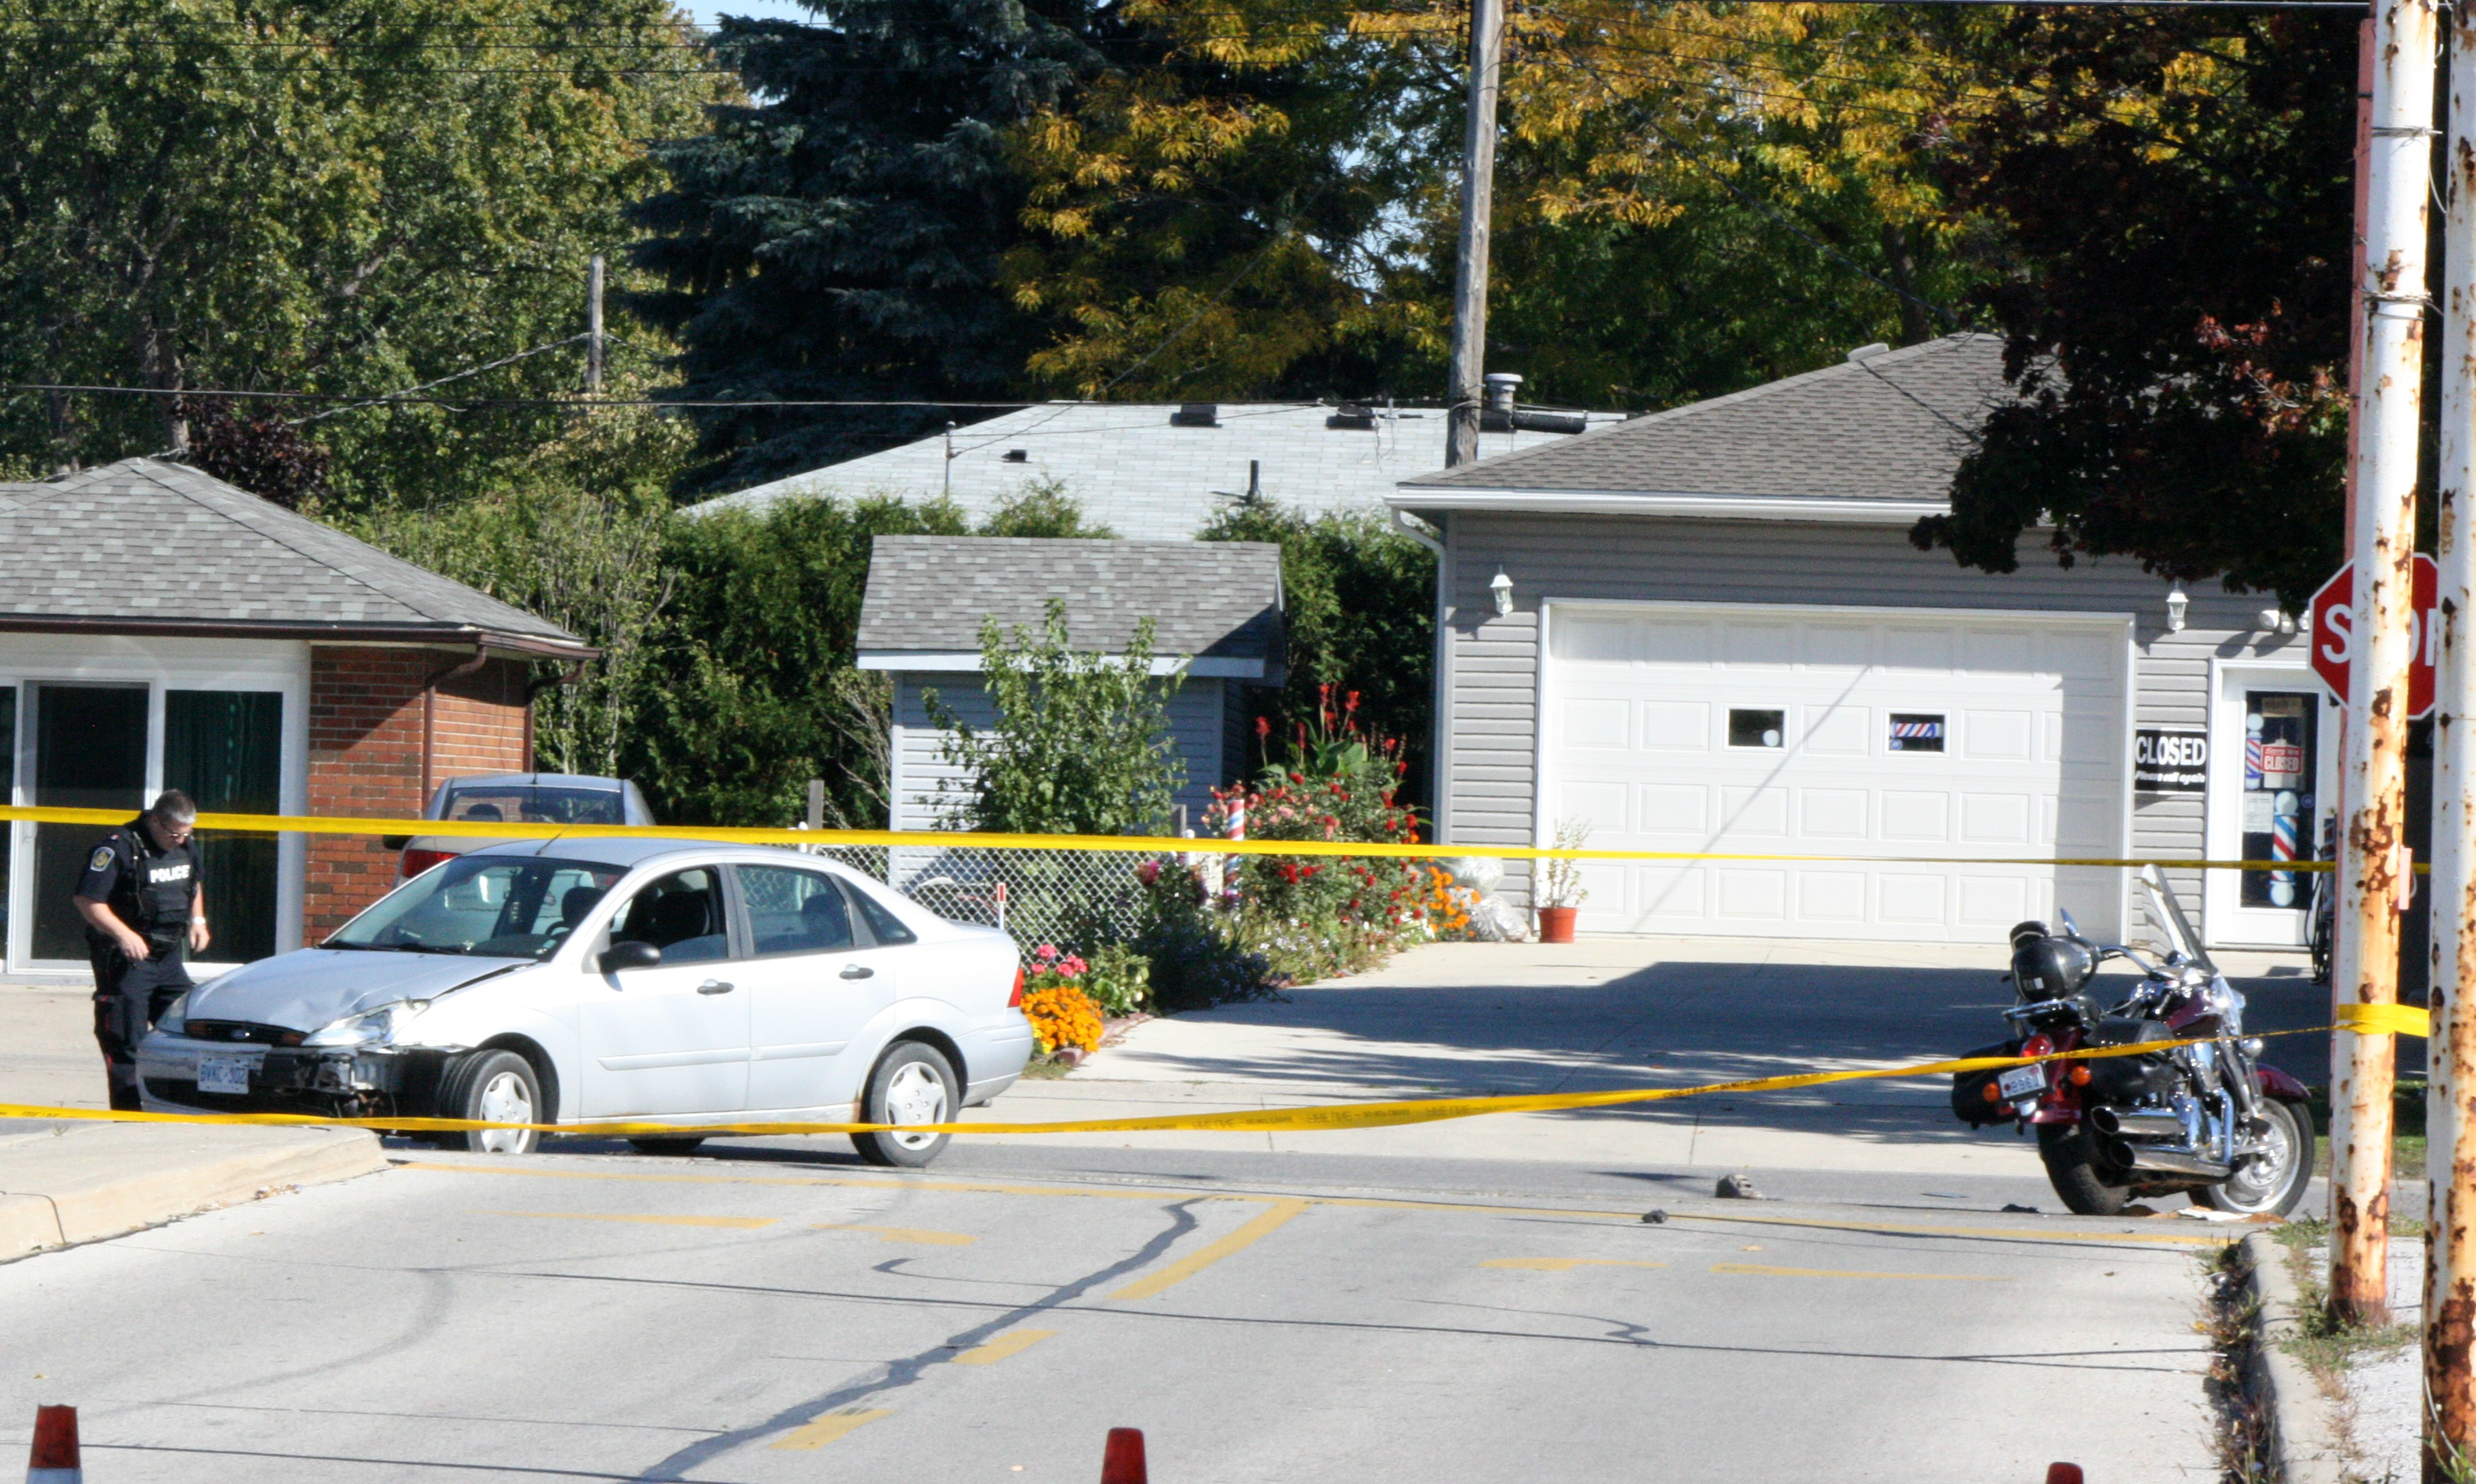 City police investigate a crash involving a car and motorcycle Sun. Oct 12, 2014 (BlackburnNews.com photo by Dave Dentinger)